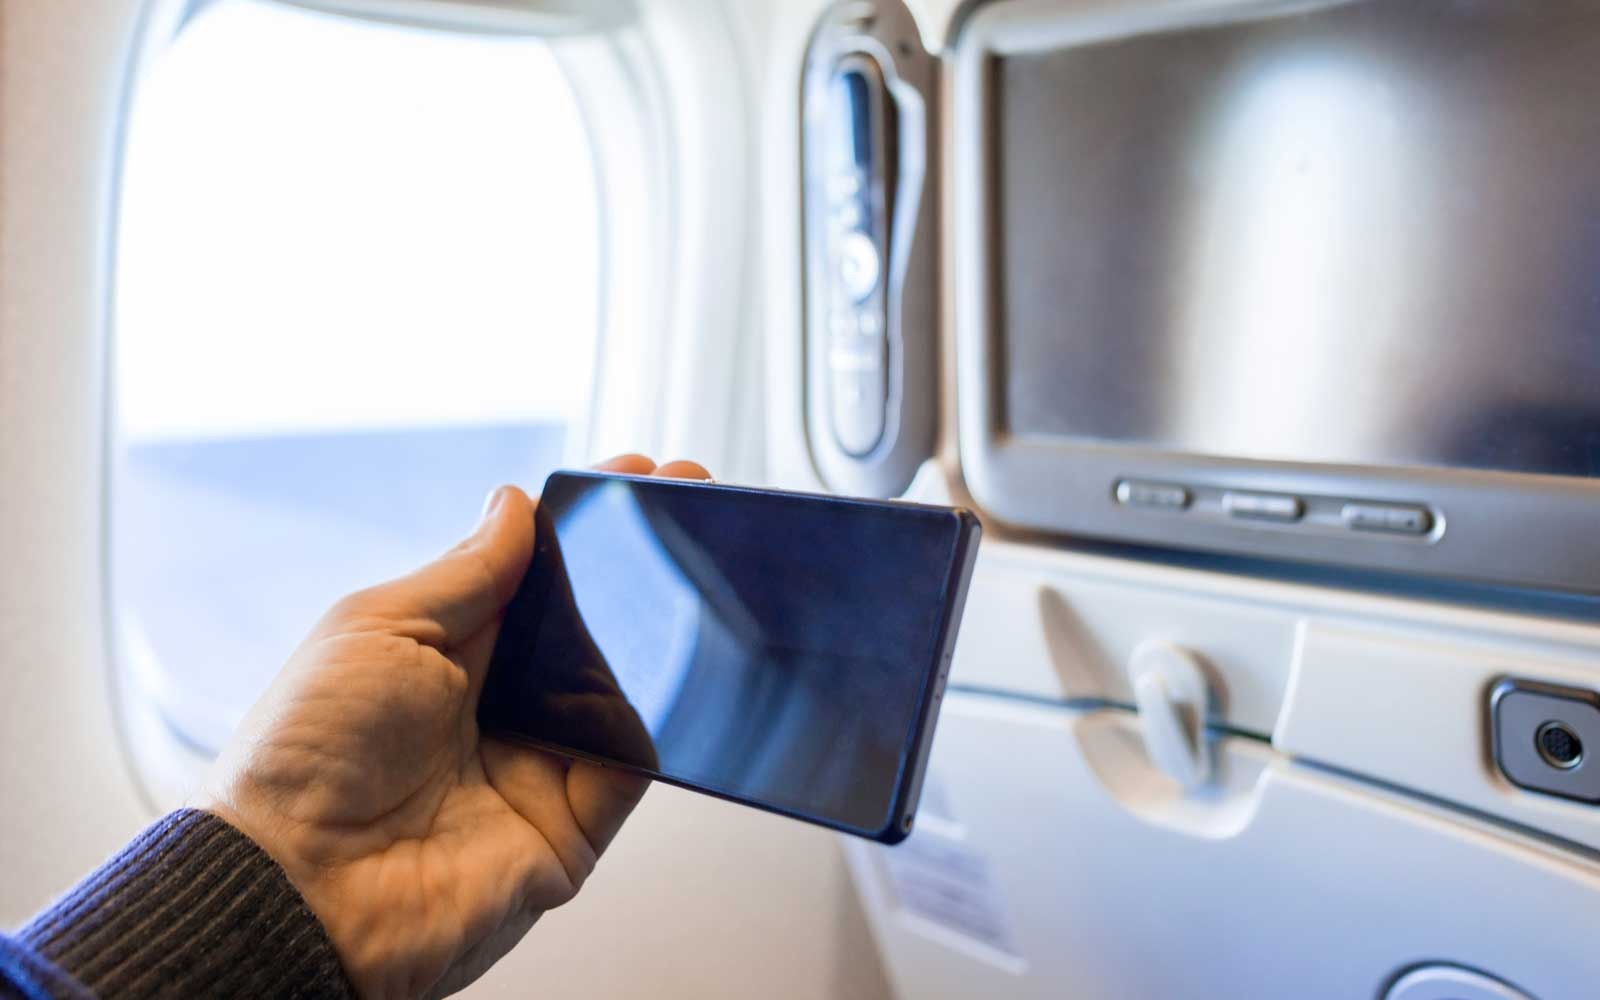 Why You Should Always Alert a Flight Attendant If You Lose Your Phone on a Plane